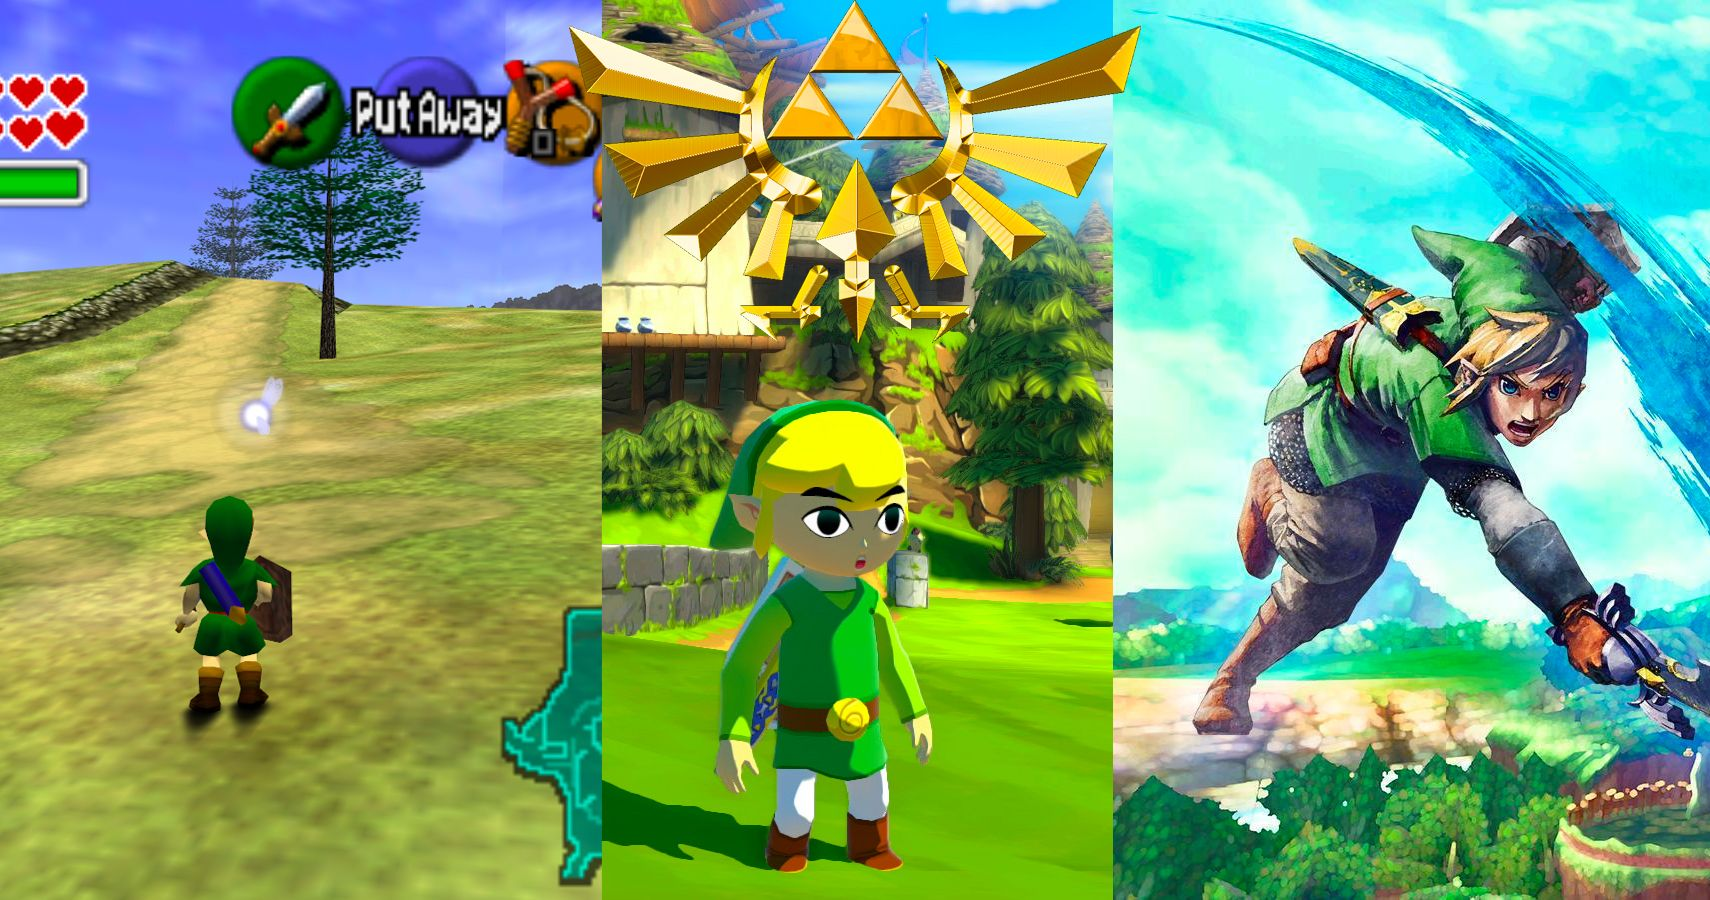 The Legend Of Zelda Every Game Ranked By How Long They Take To Beat